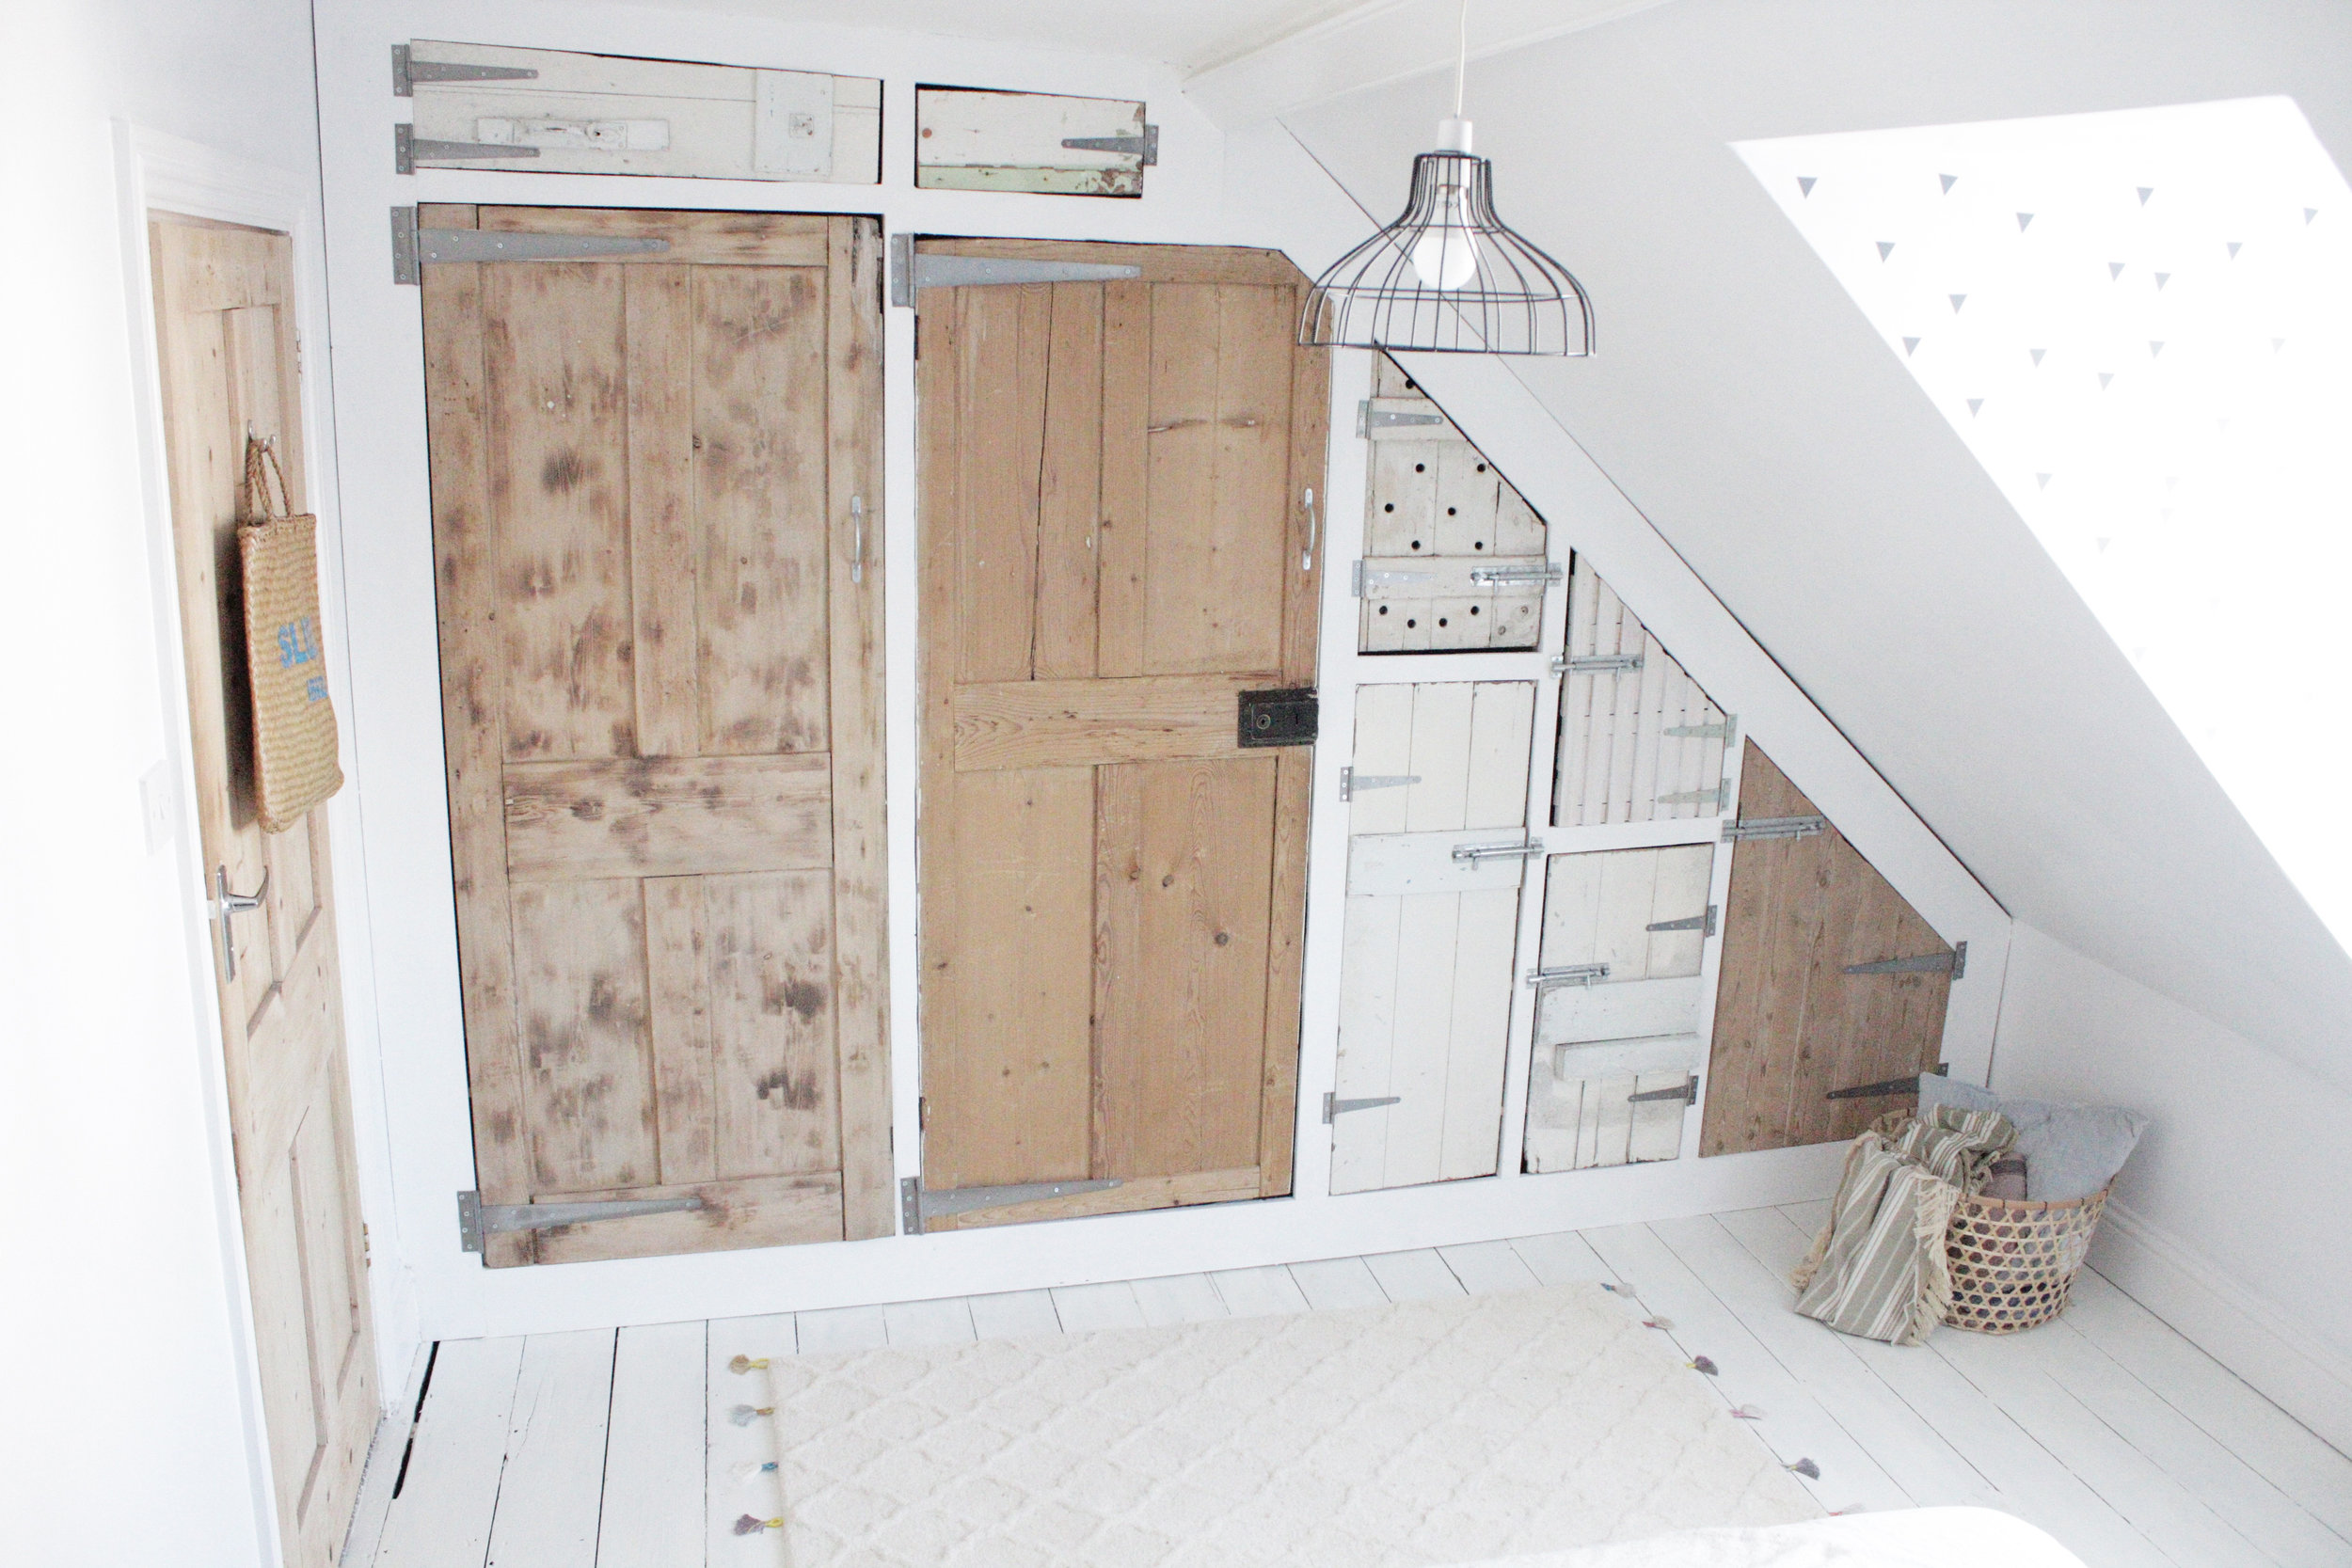 Diy Vtwonen Bank The Big Wardrobe Build Using Reclaimed Doors Part 2 Hester S